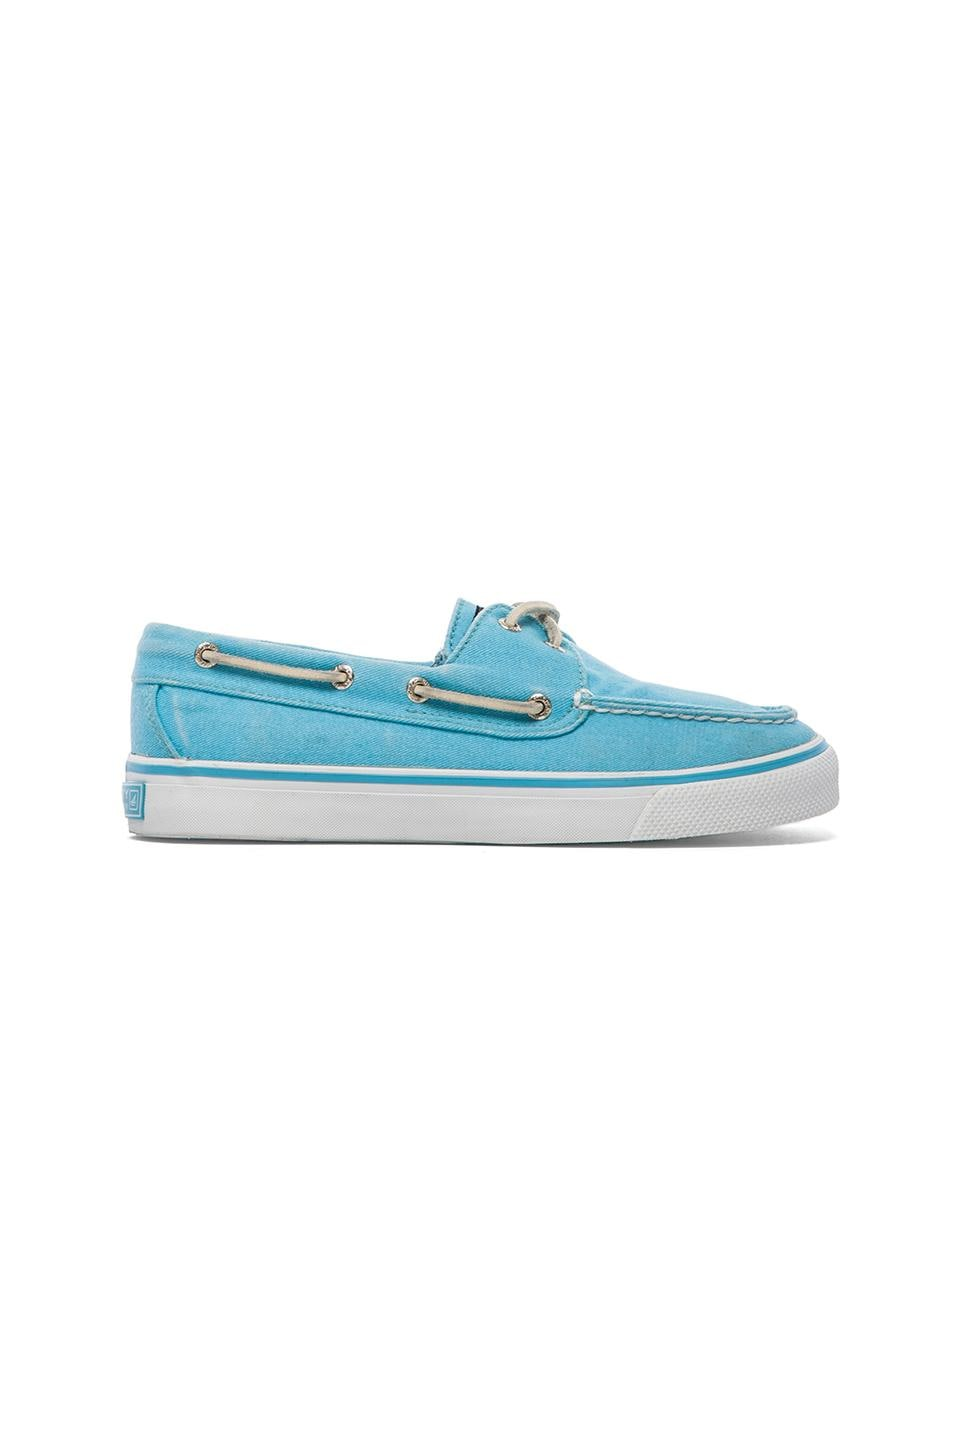 Sperry Top-Sider Bahama 2-Eye in Turquoise Canvas